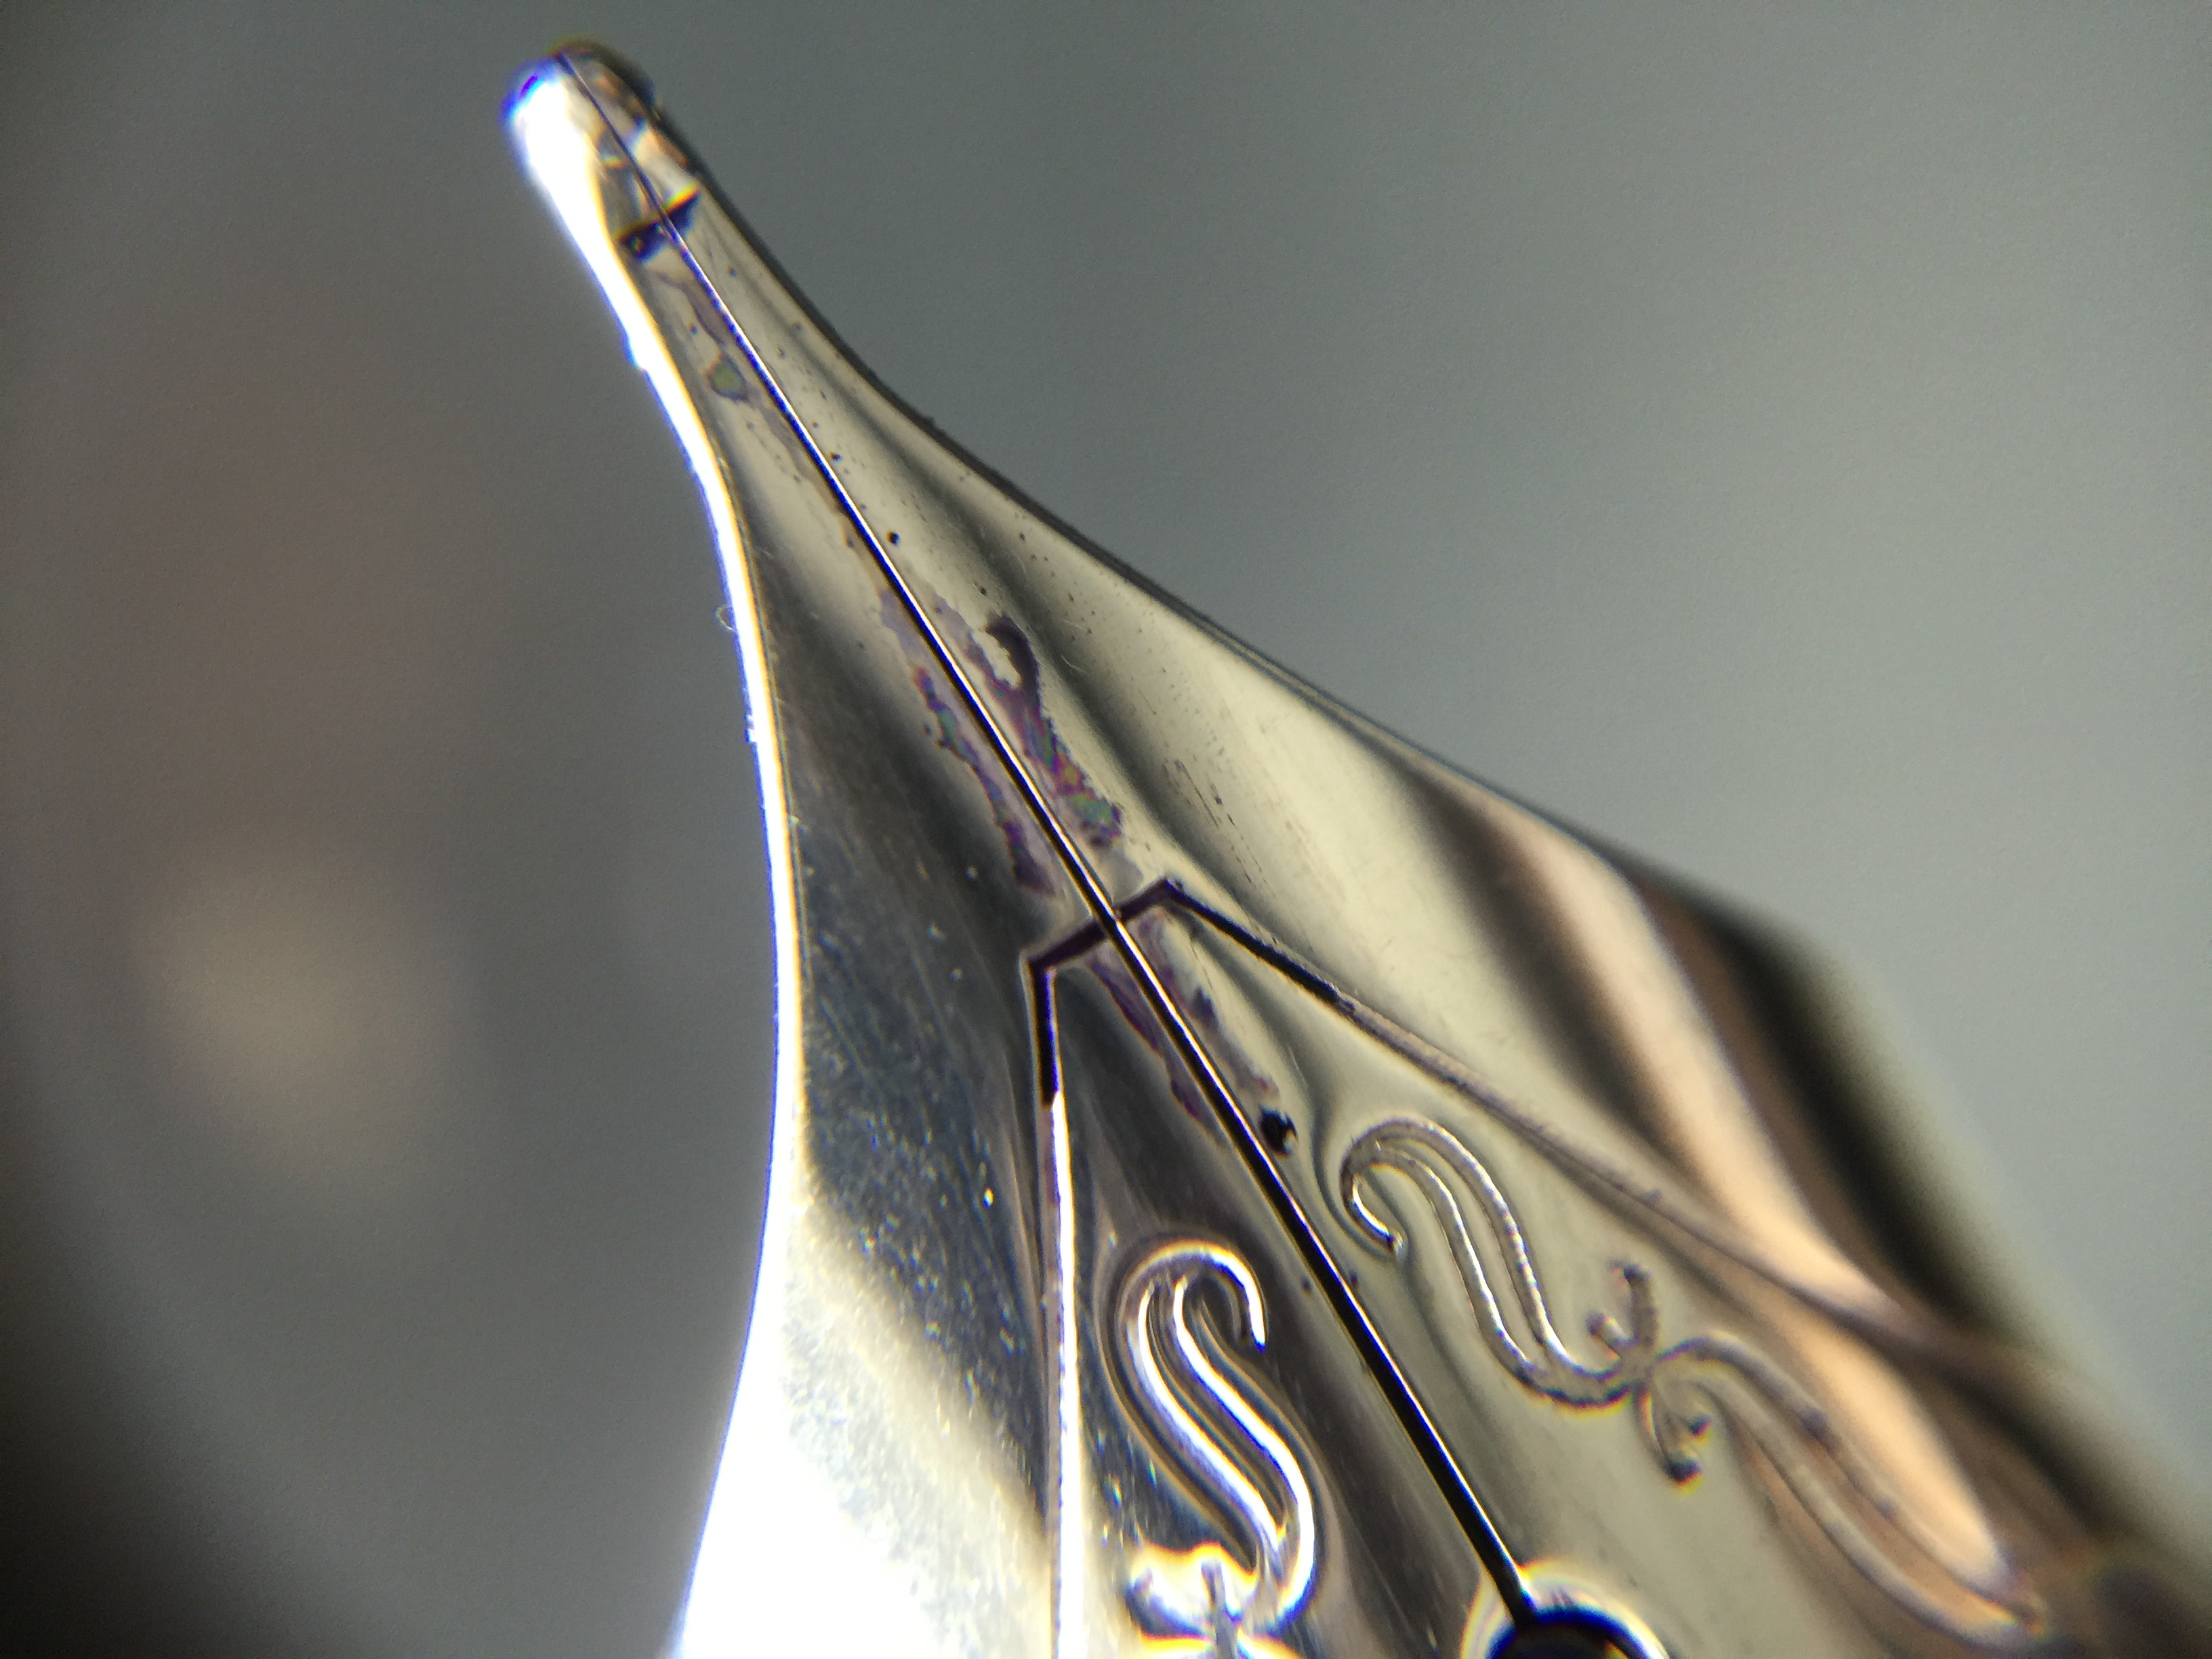 Top side of the nib